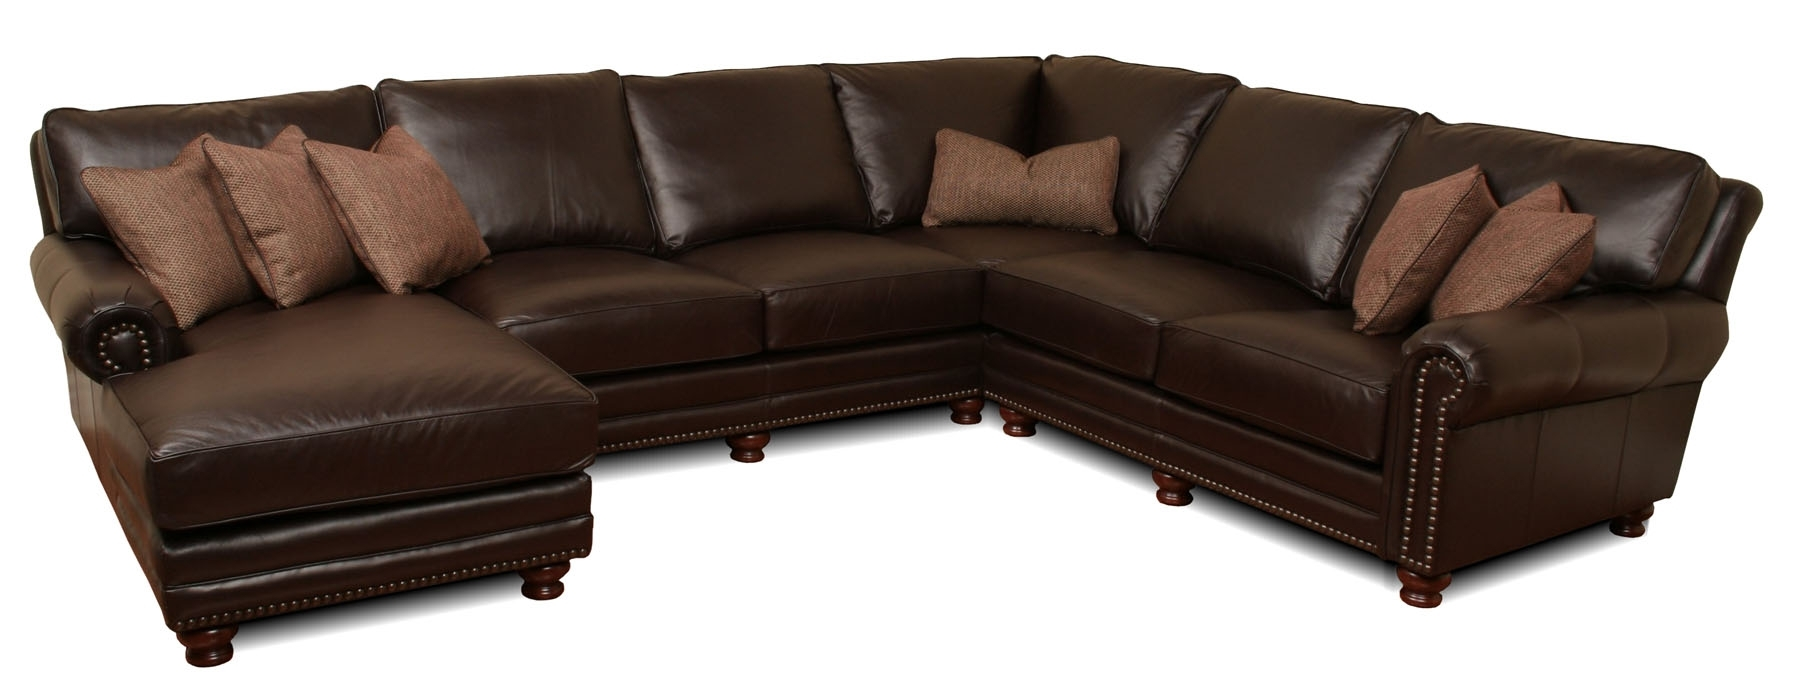 Sectional Sofa Kingston Ontario | Thecreativescientist With Kingston Ontario Sectional Sofas (View 7 of 10)